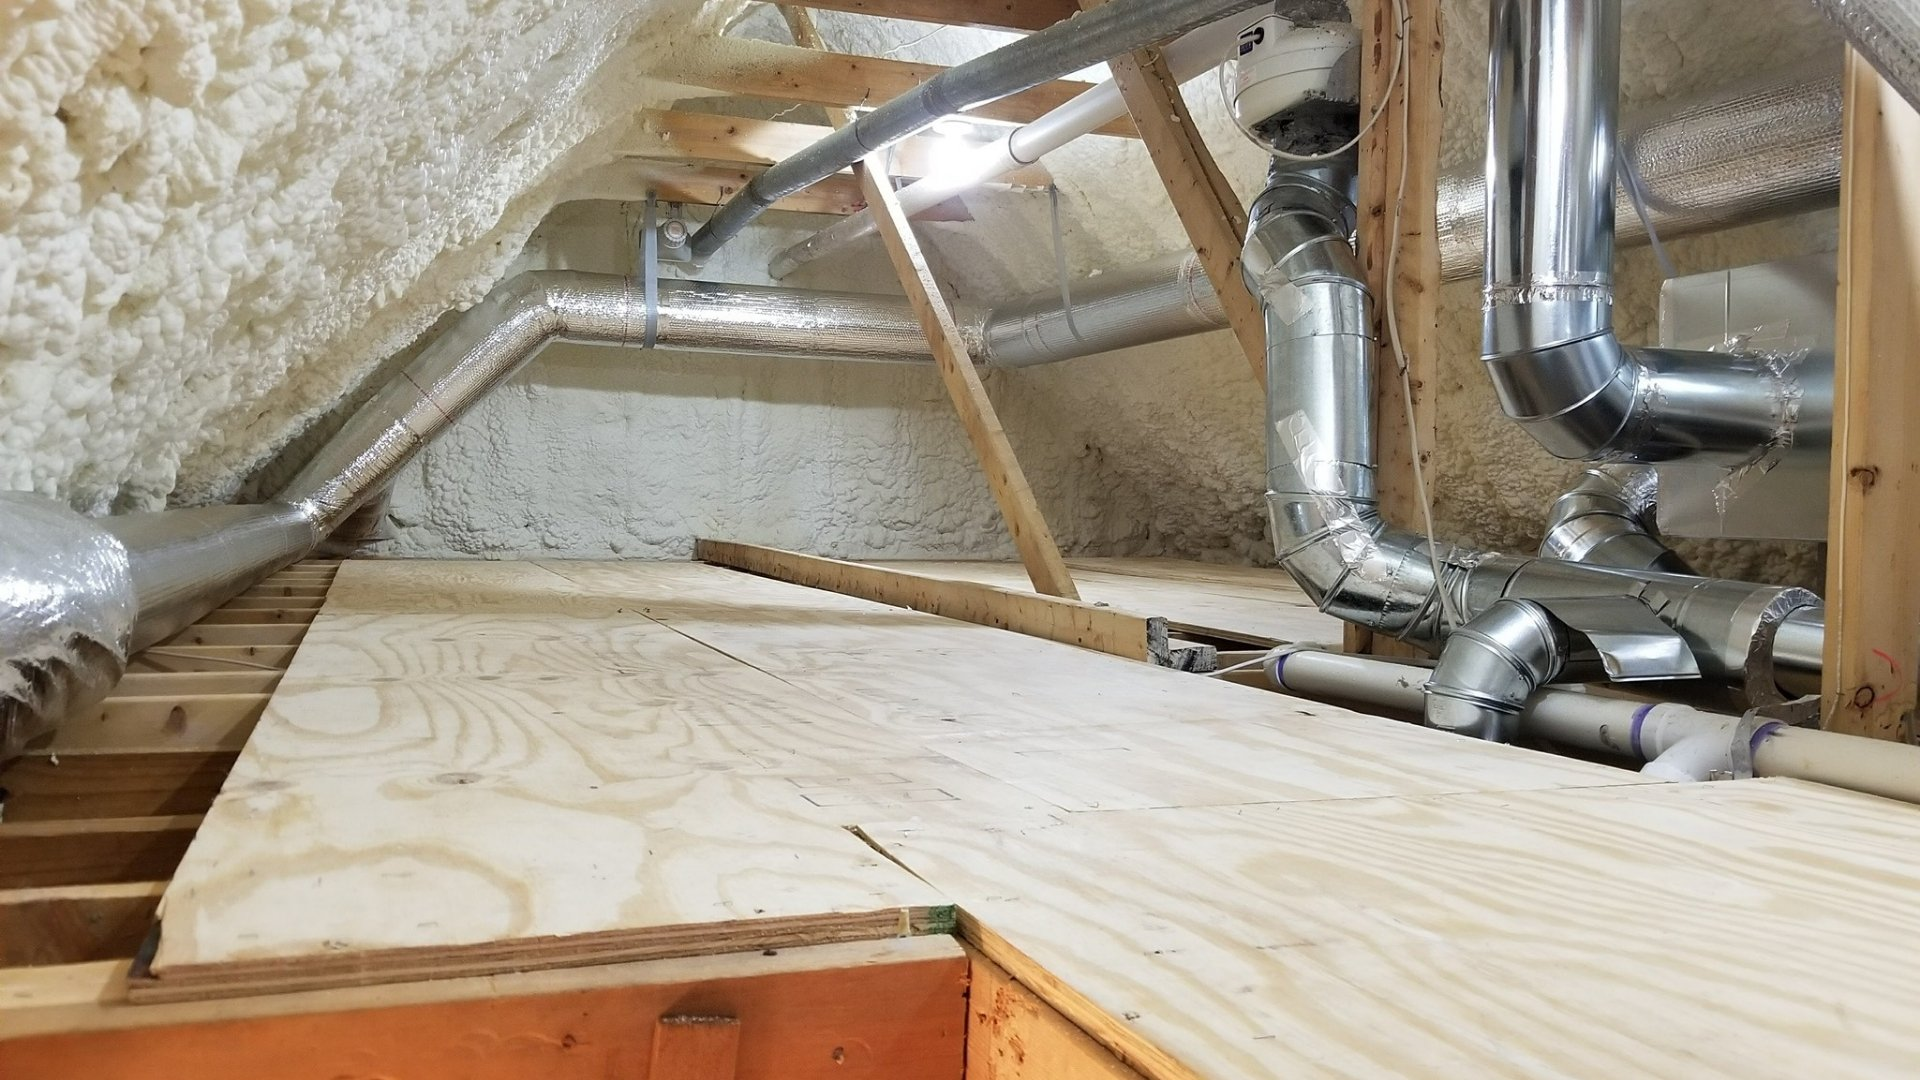 Completed Insulation and Duct Sealing During Attic Encapsulation